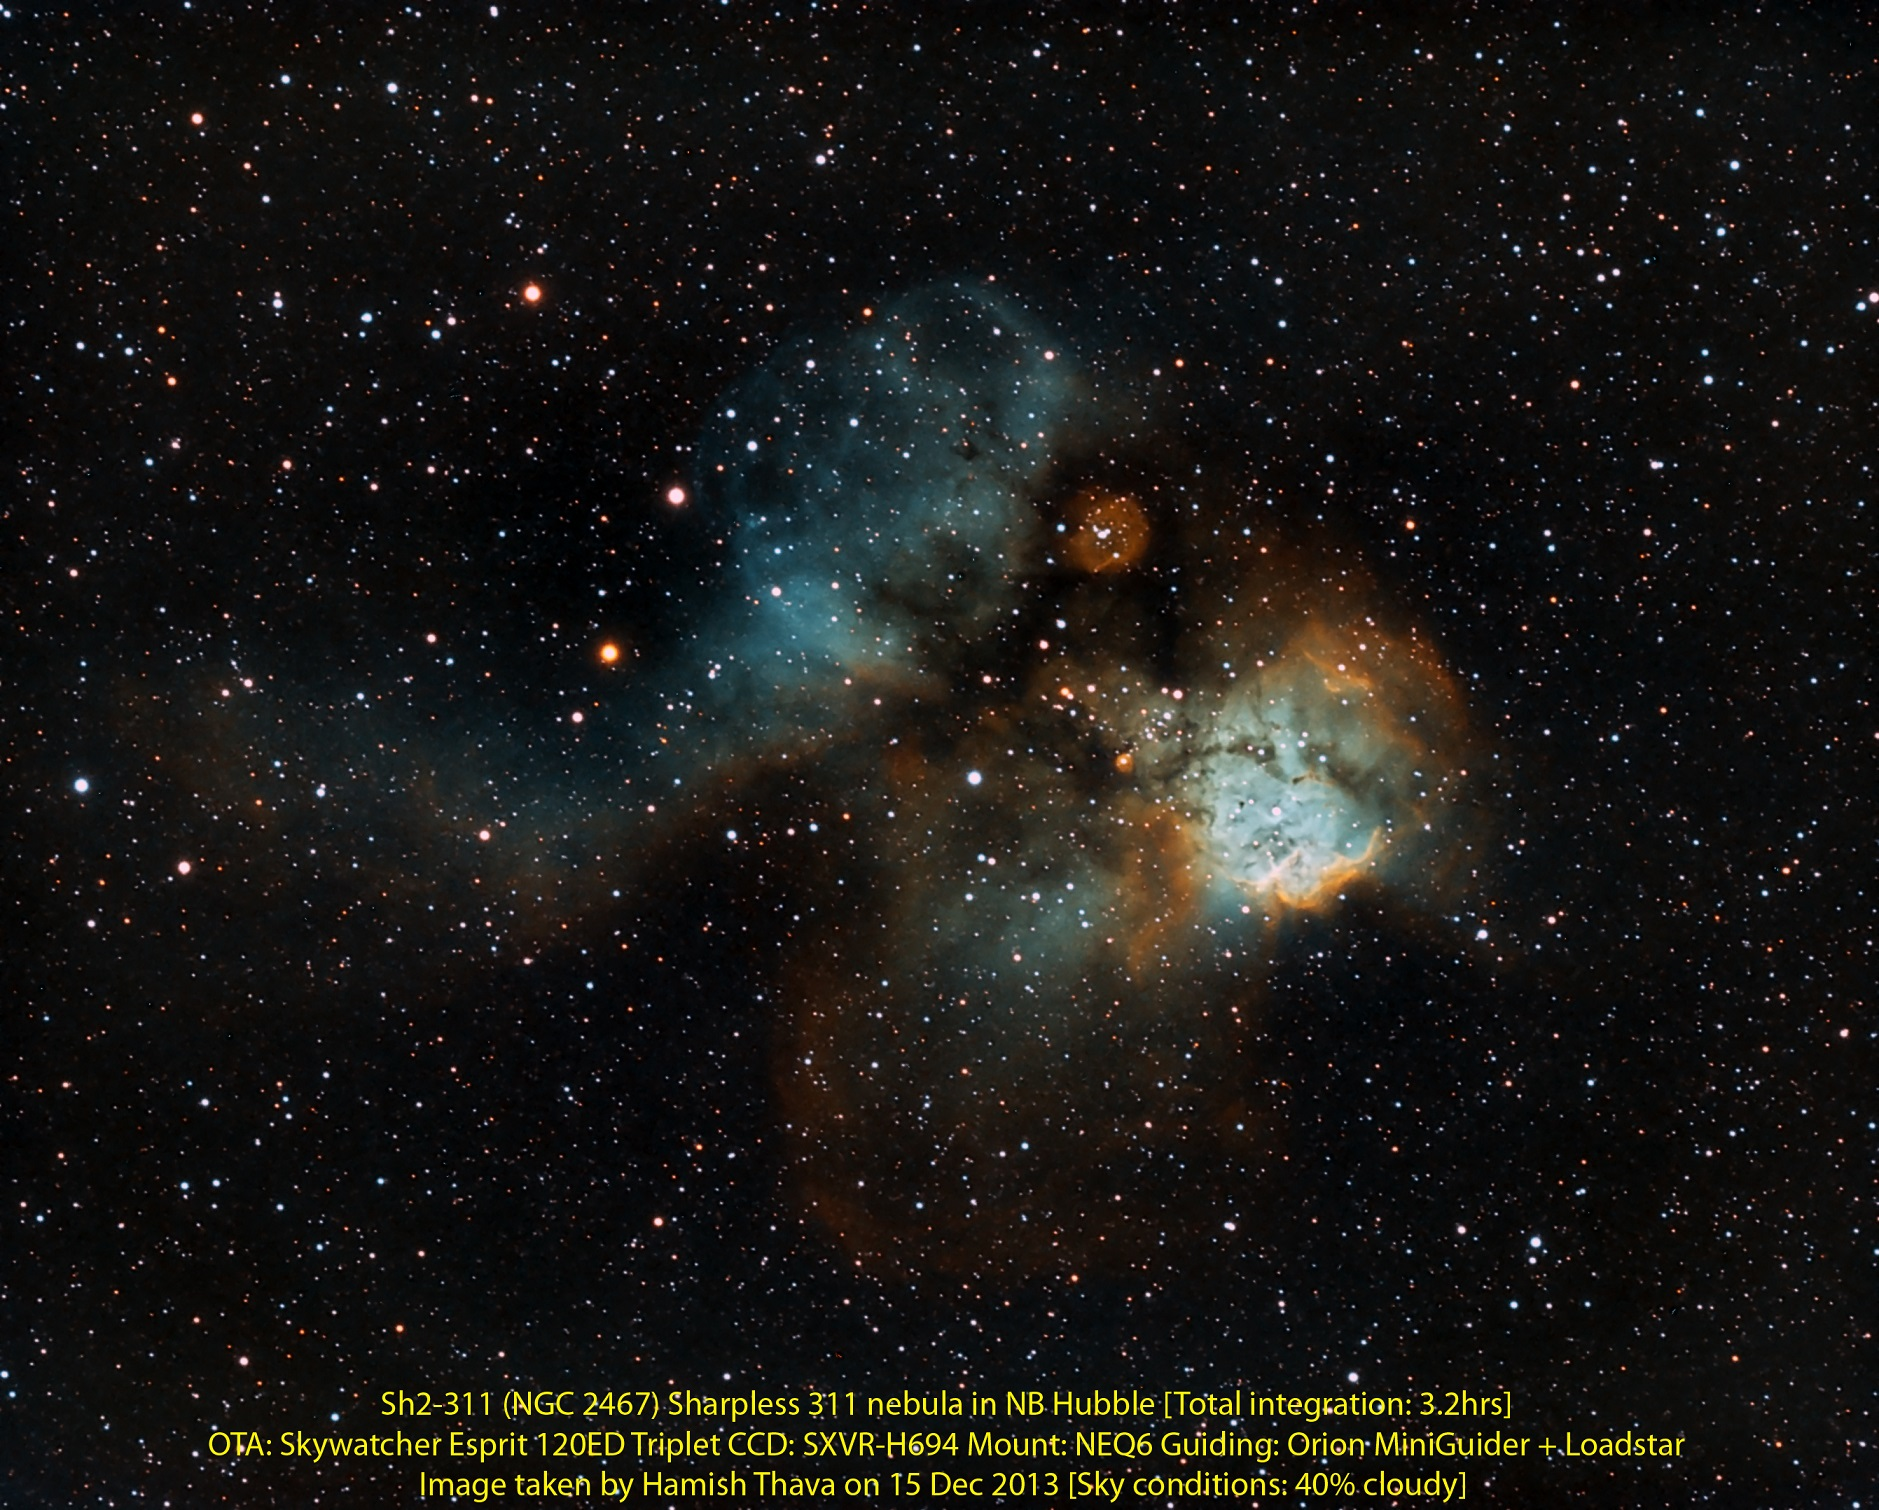 Sharpless 311 Nebula